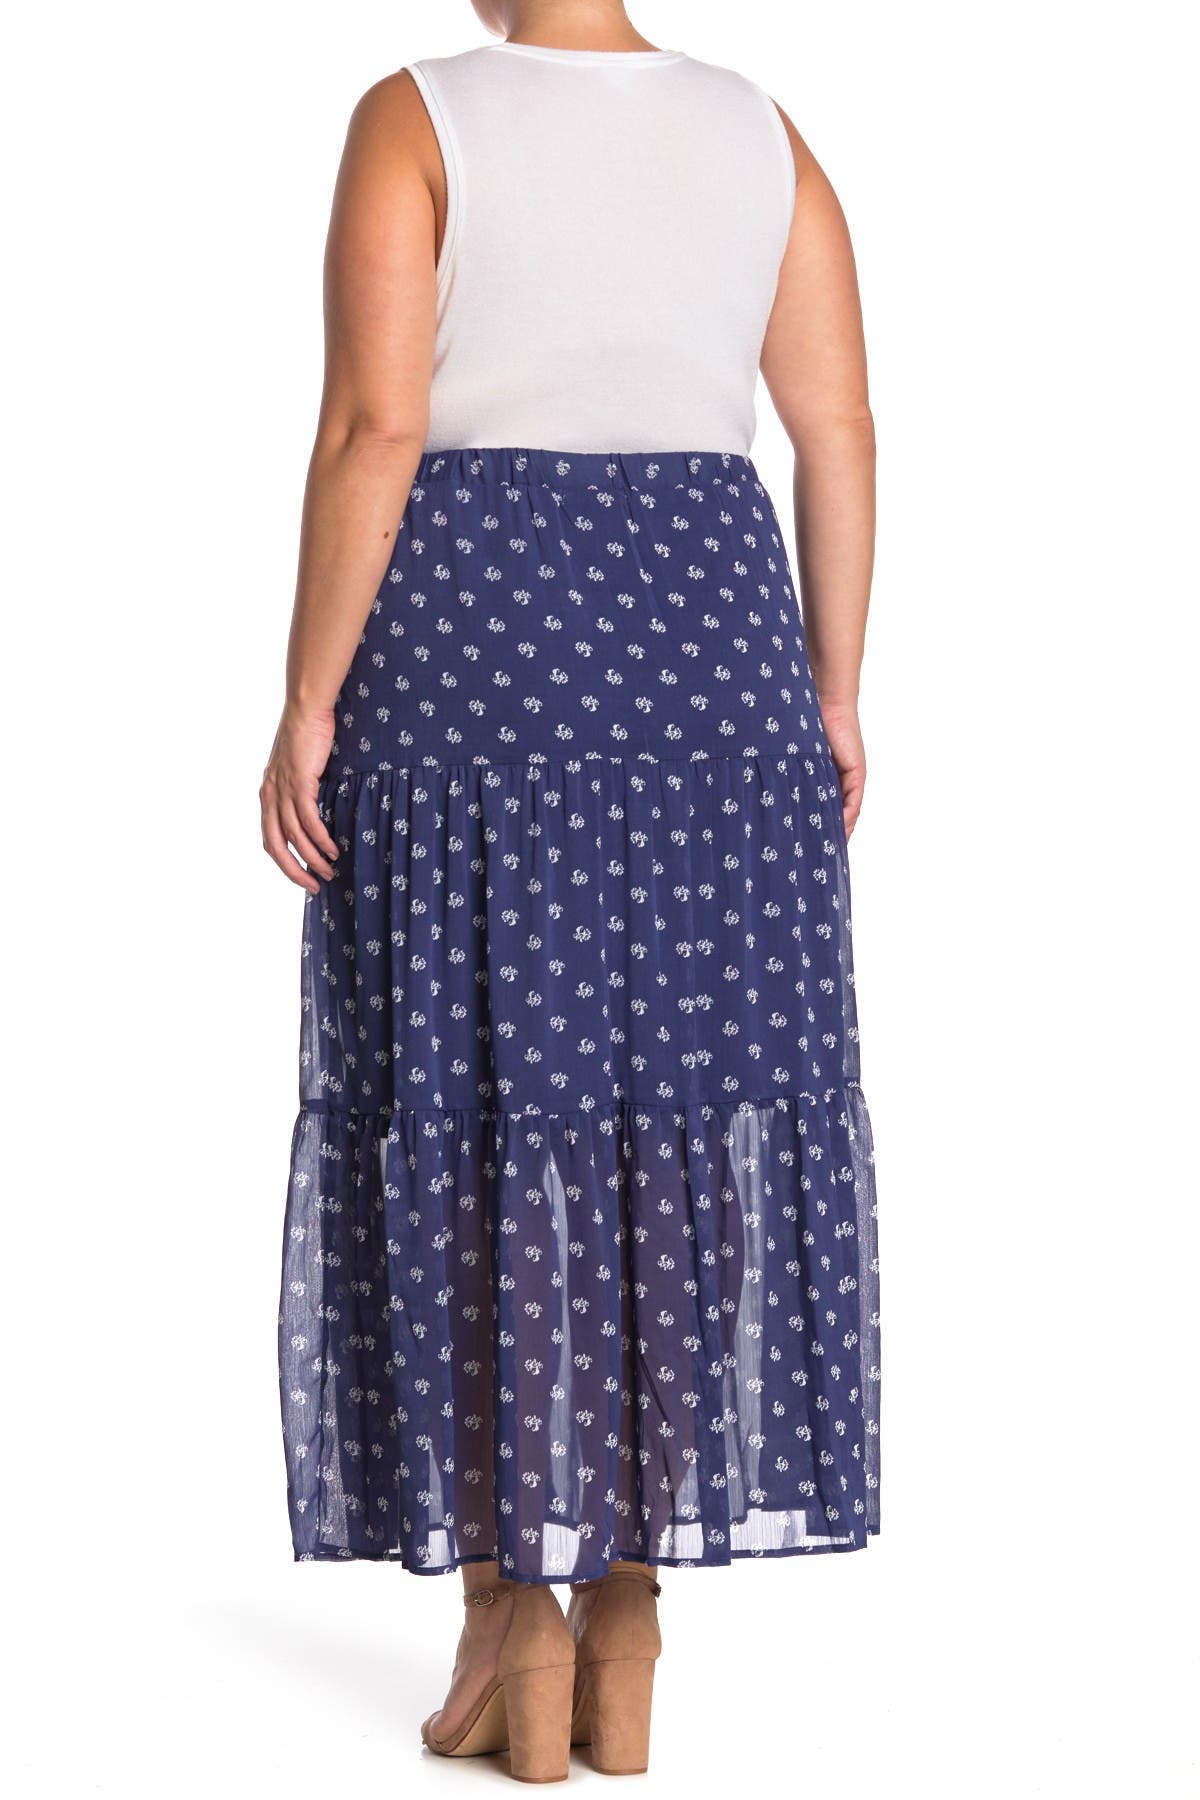 Image of 14TH PLACE Printed Tiered Maxi Skirt